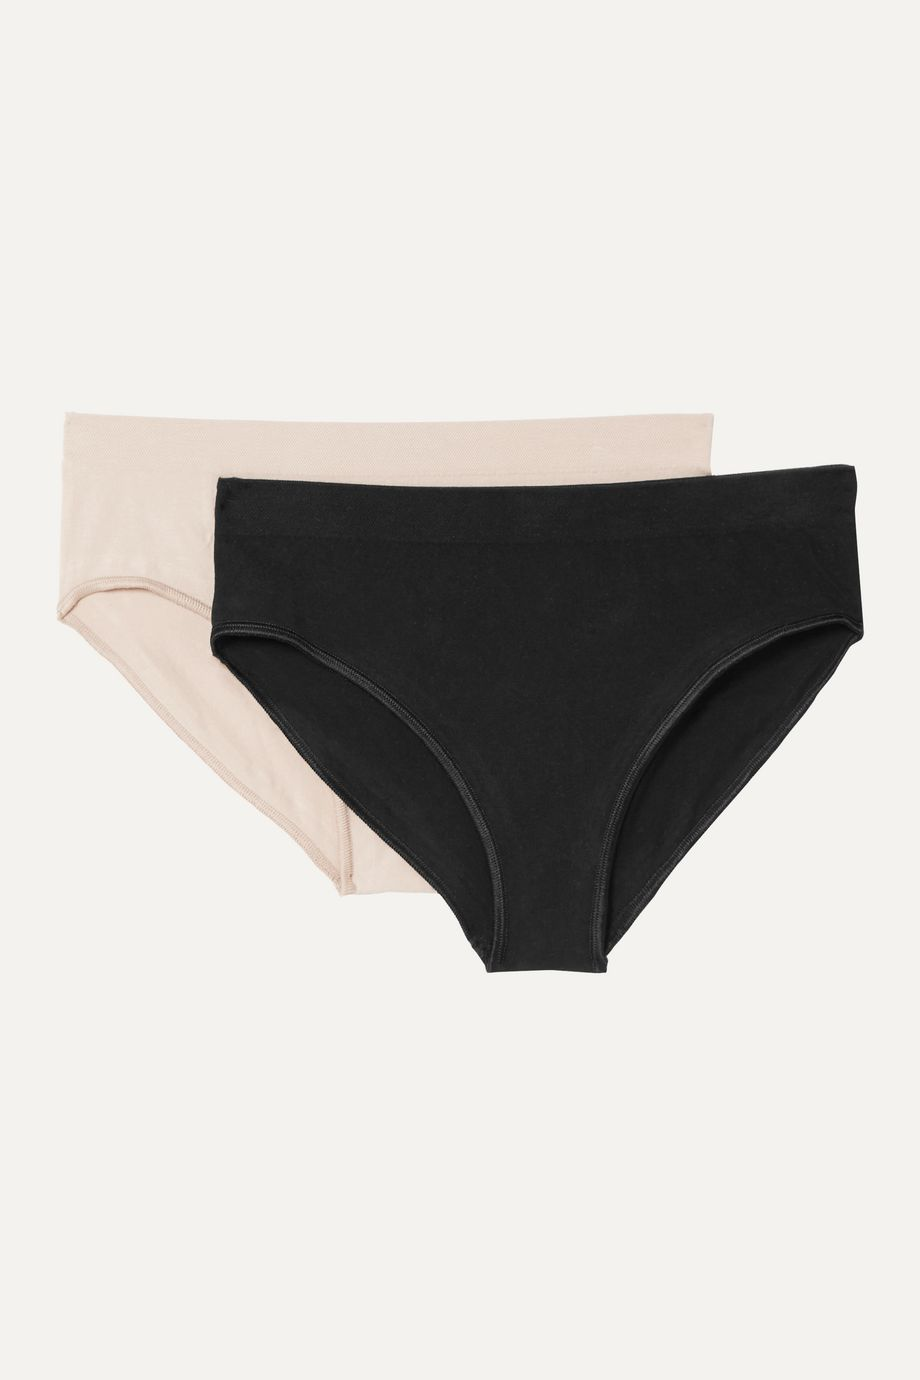 Baserange + NET SUSTAIN Oleta set of two stretch cotton-blend briefs